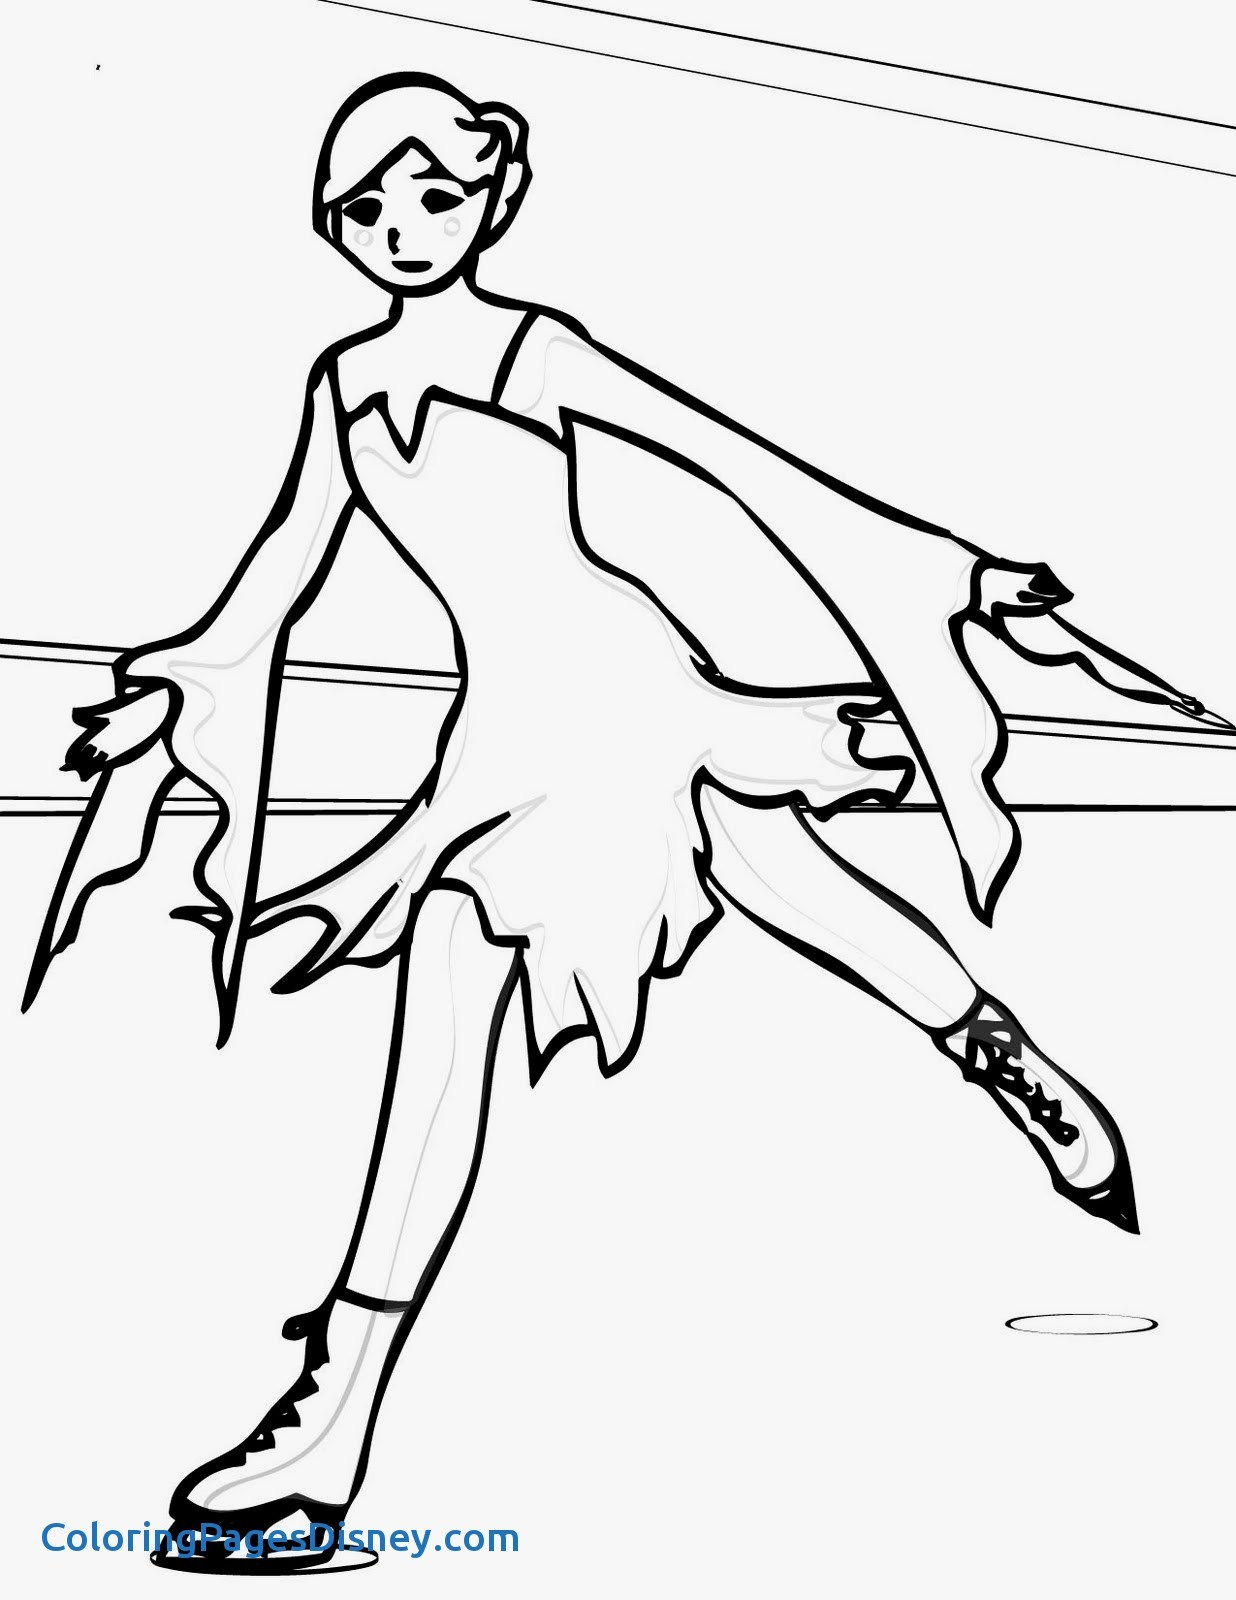 1236x1600 Coloring Pages Ice Skating Lovely Skating Coloring Pages